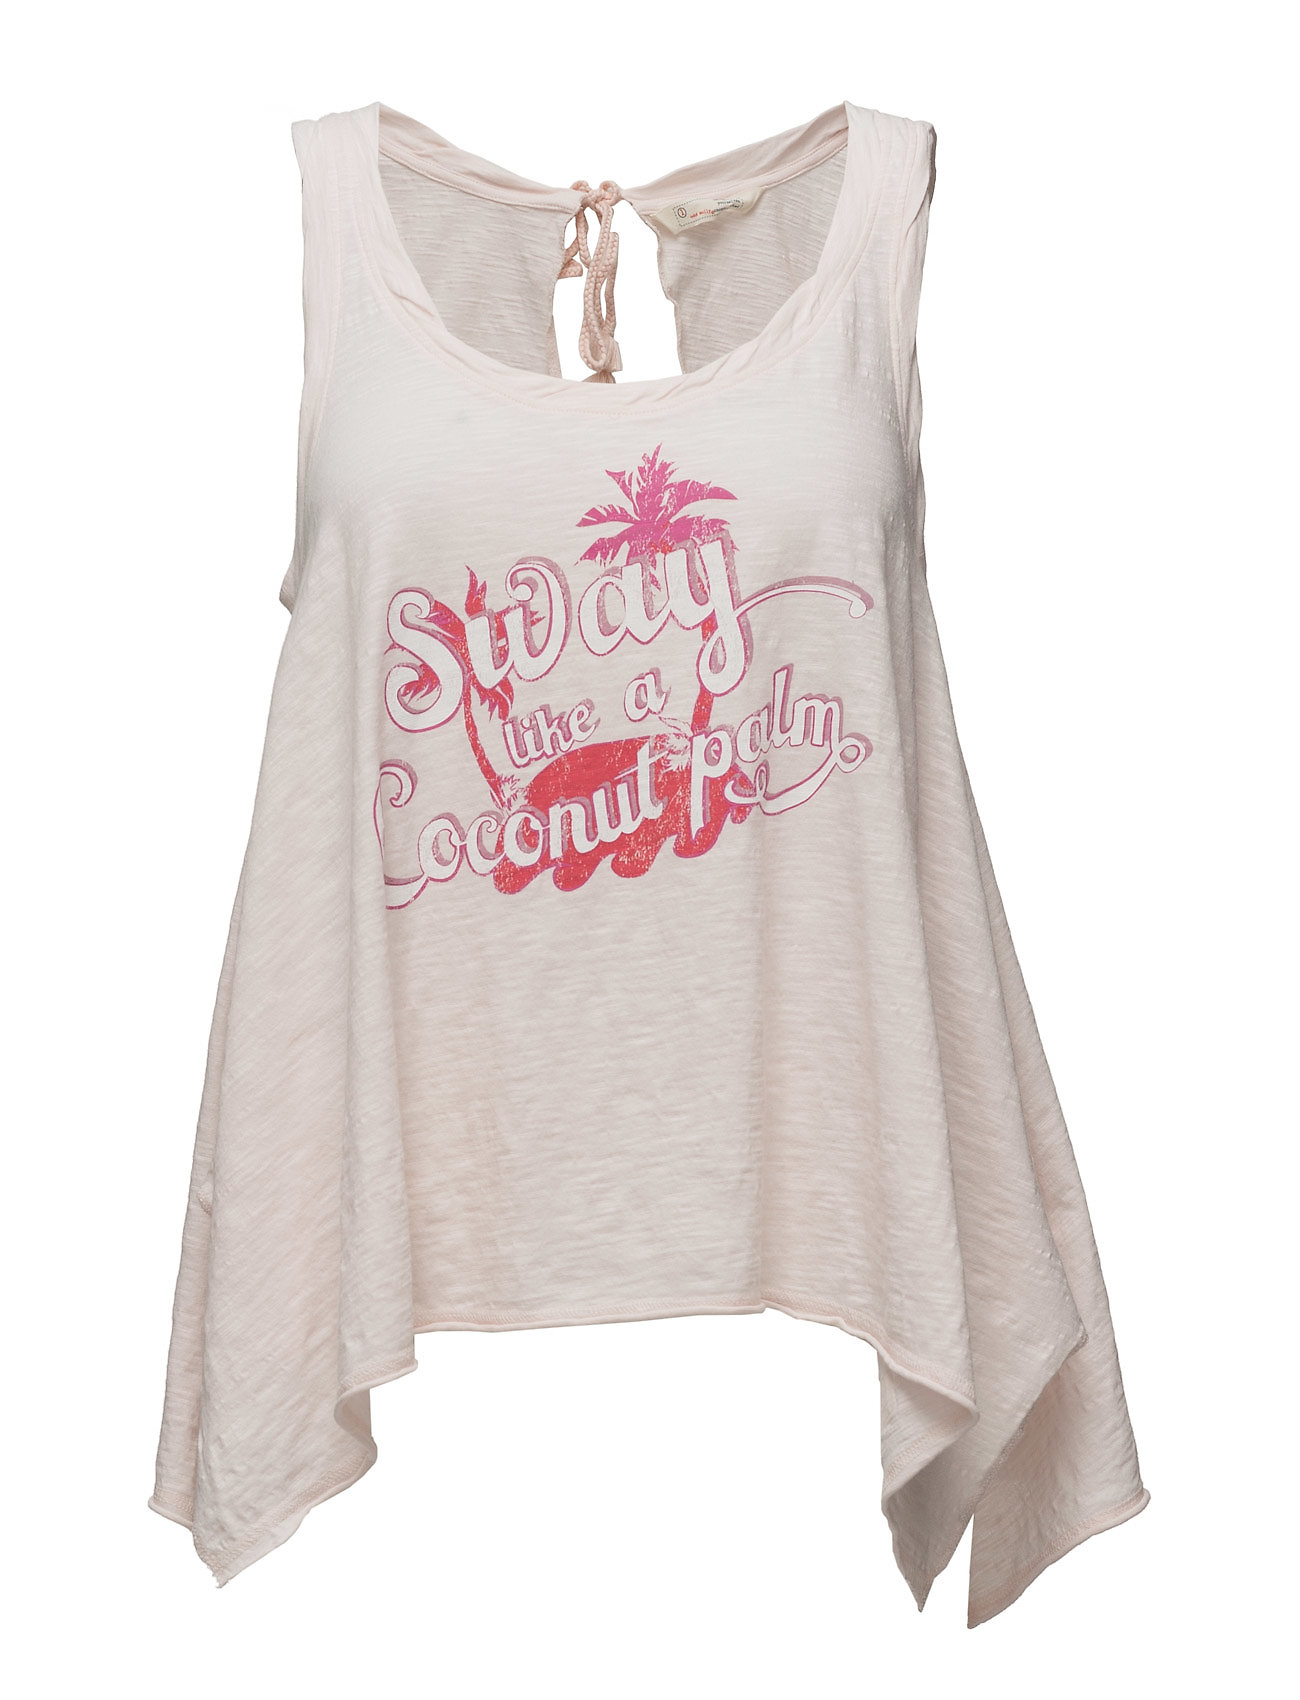 ODD MOLLY summer vibes tank top